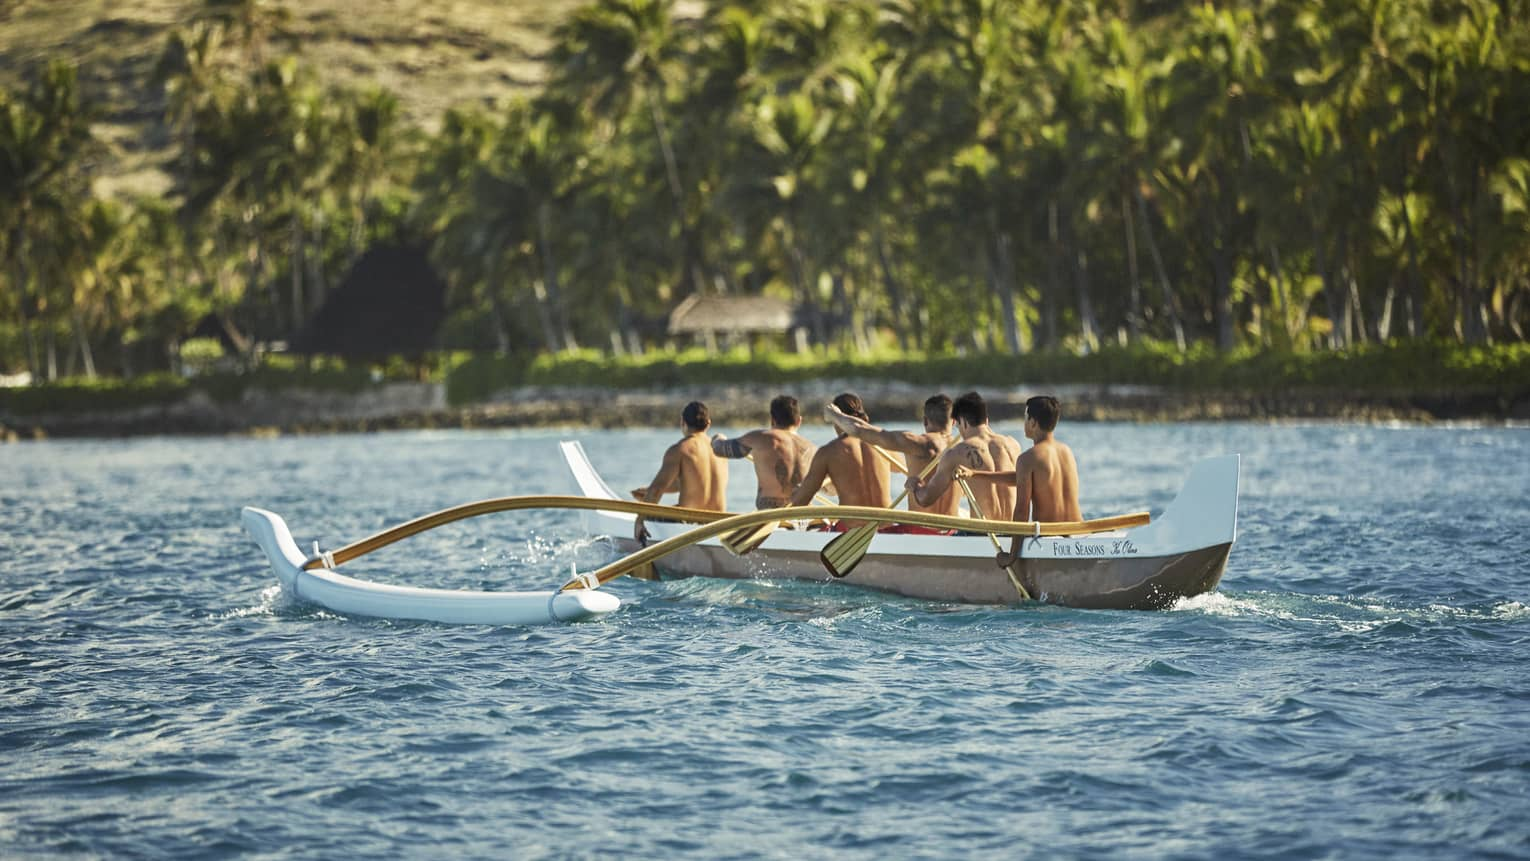 Guests paddling through clear water on a specialized boat in Oahu